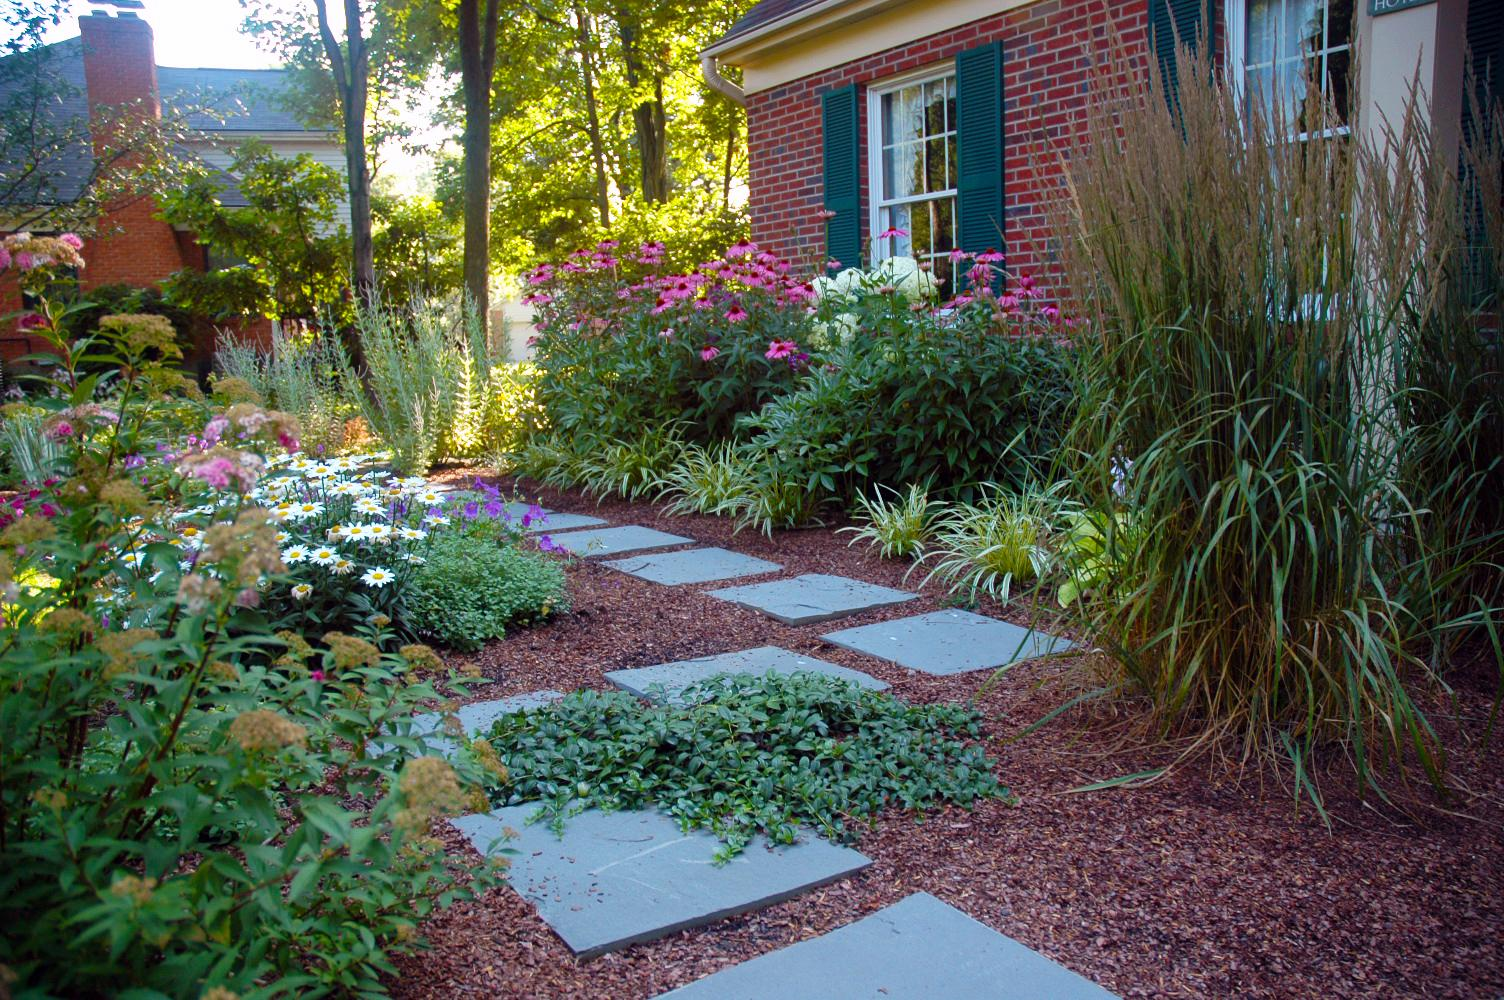 LaMond Design is a full-service landscaping company in Cincinnati. They will help you through every stage of the project, from designing to installing to maintaining. / Image courtesy of LaMond Design // Published: 4.14.17